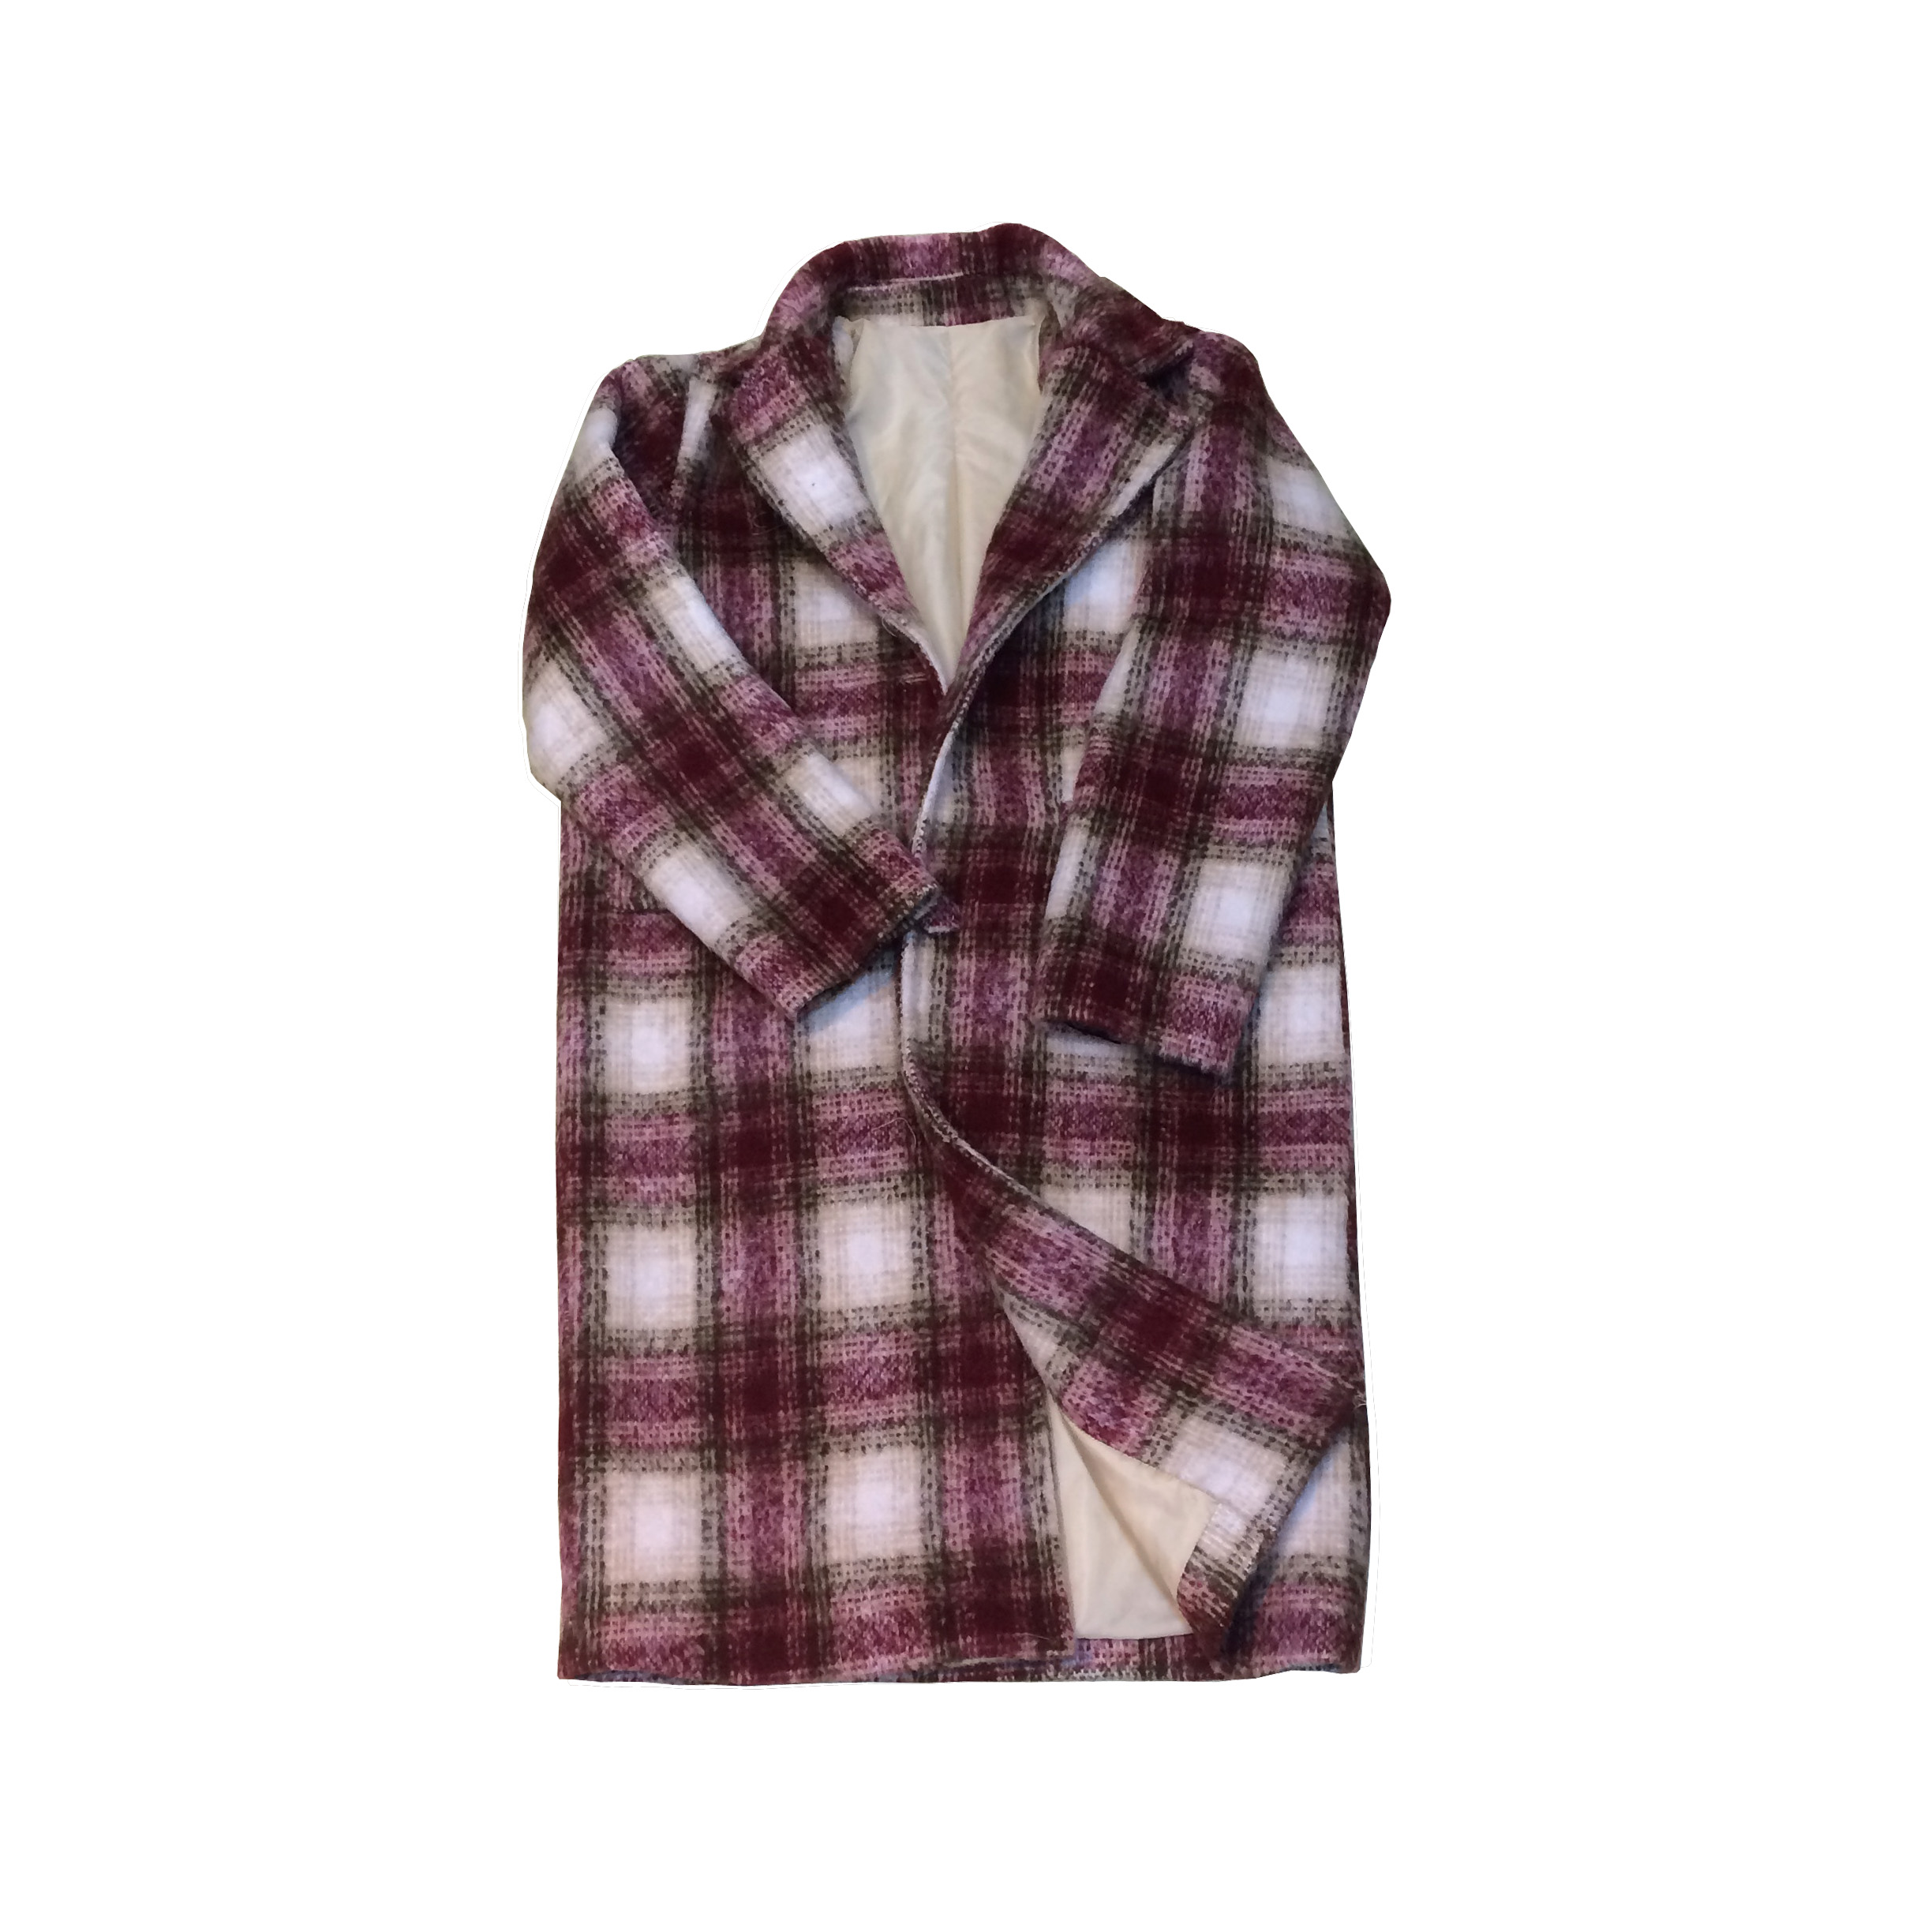 Woolen overcoat womens middle and long Korean autumn and winter 2017 new gradient cashmere like loose coat Plaid top